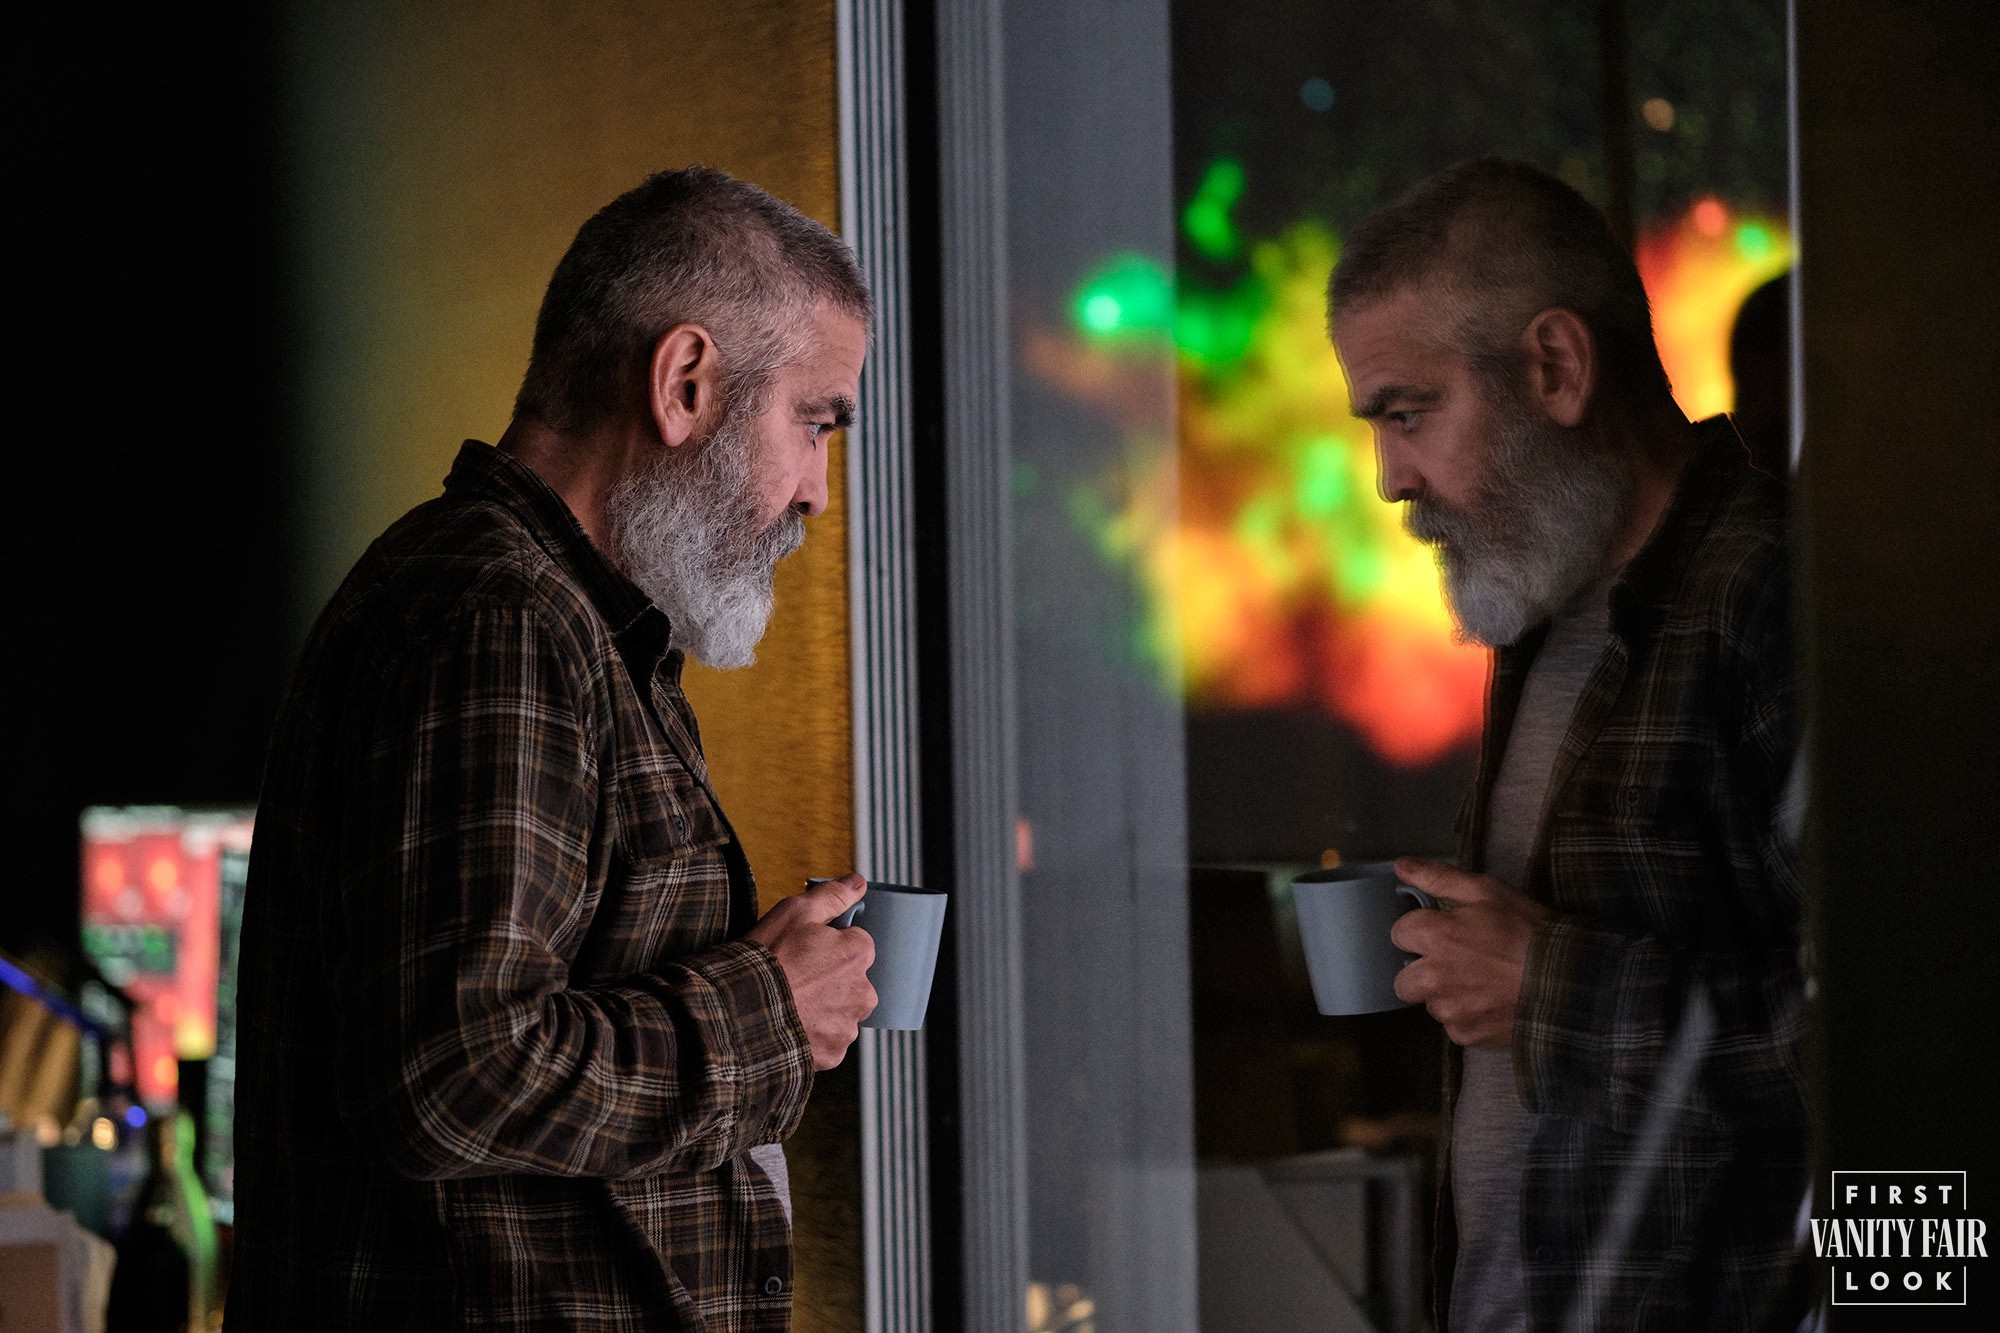 George Clooney, playing his character in The Midnight Sky, looks at his reflection in the mirror.